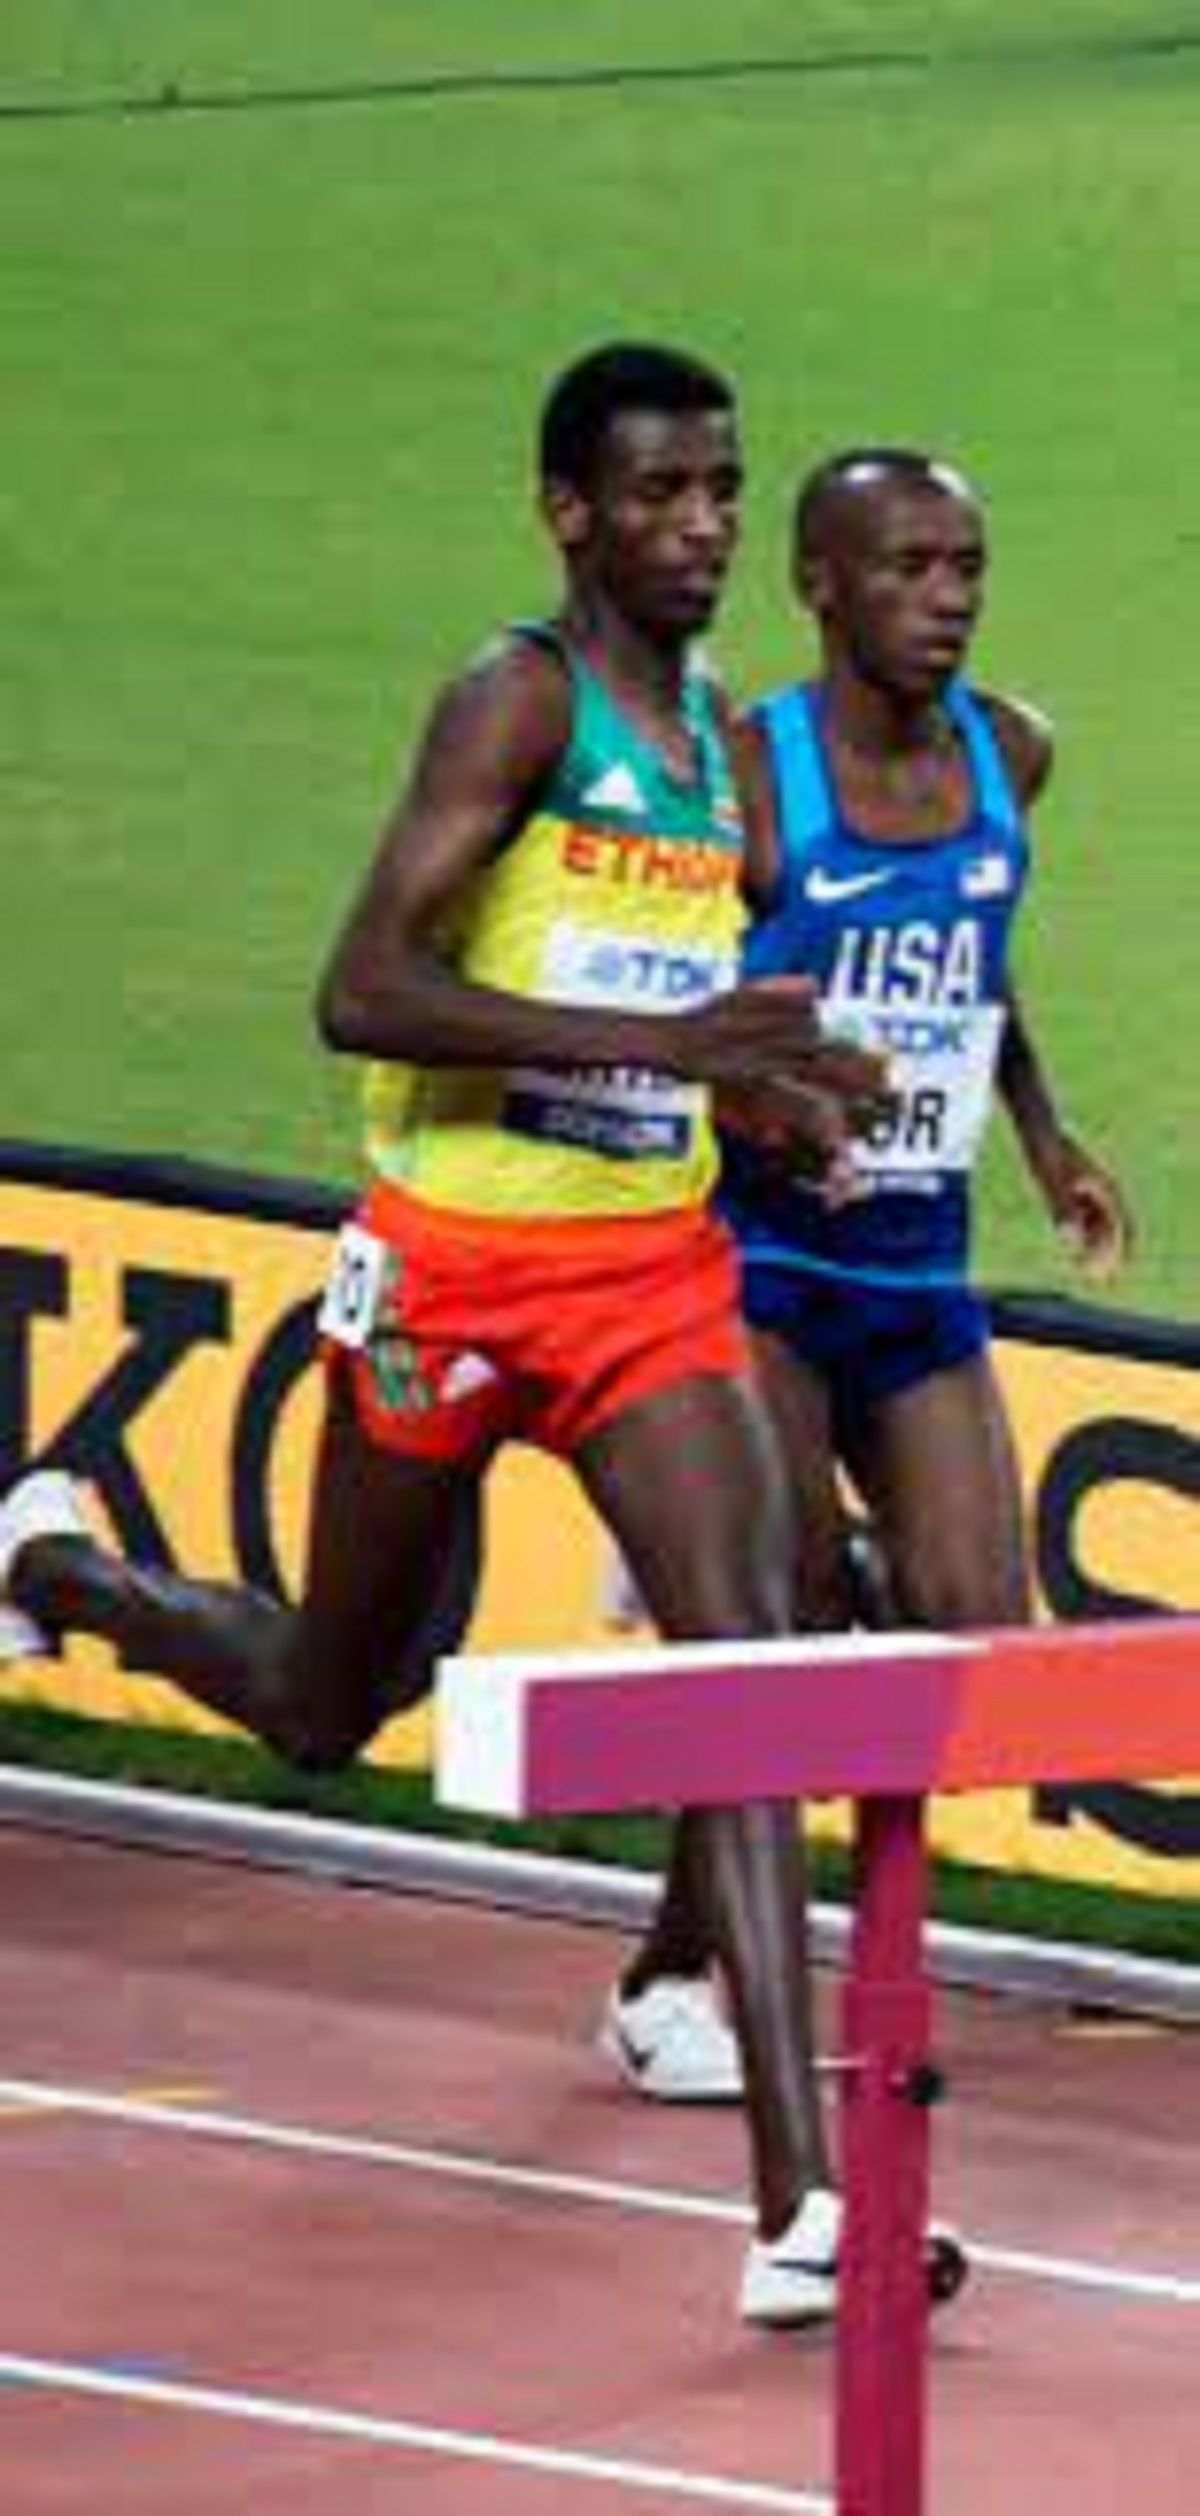 2021 Olympic Games Steeple Chase